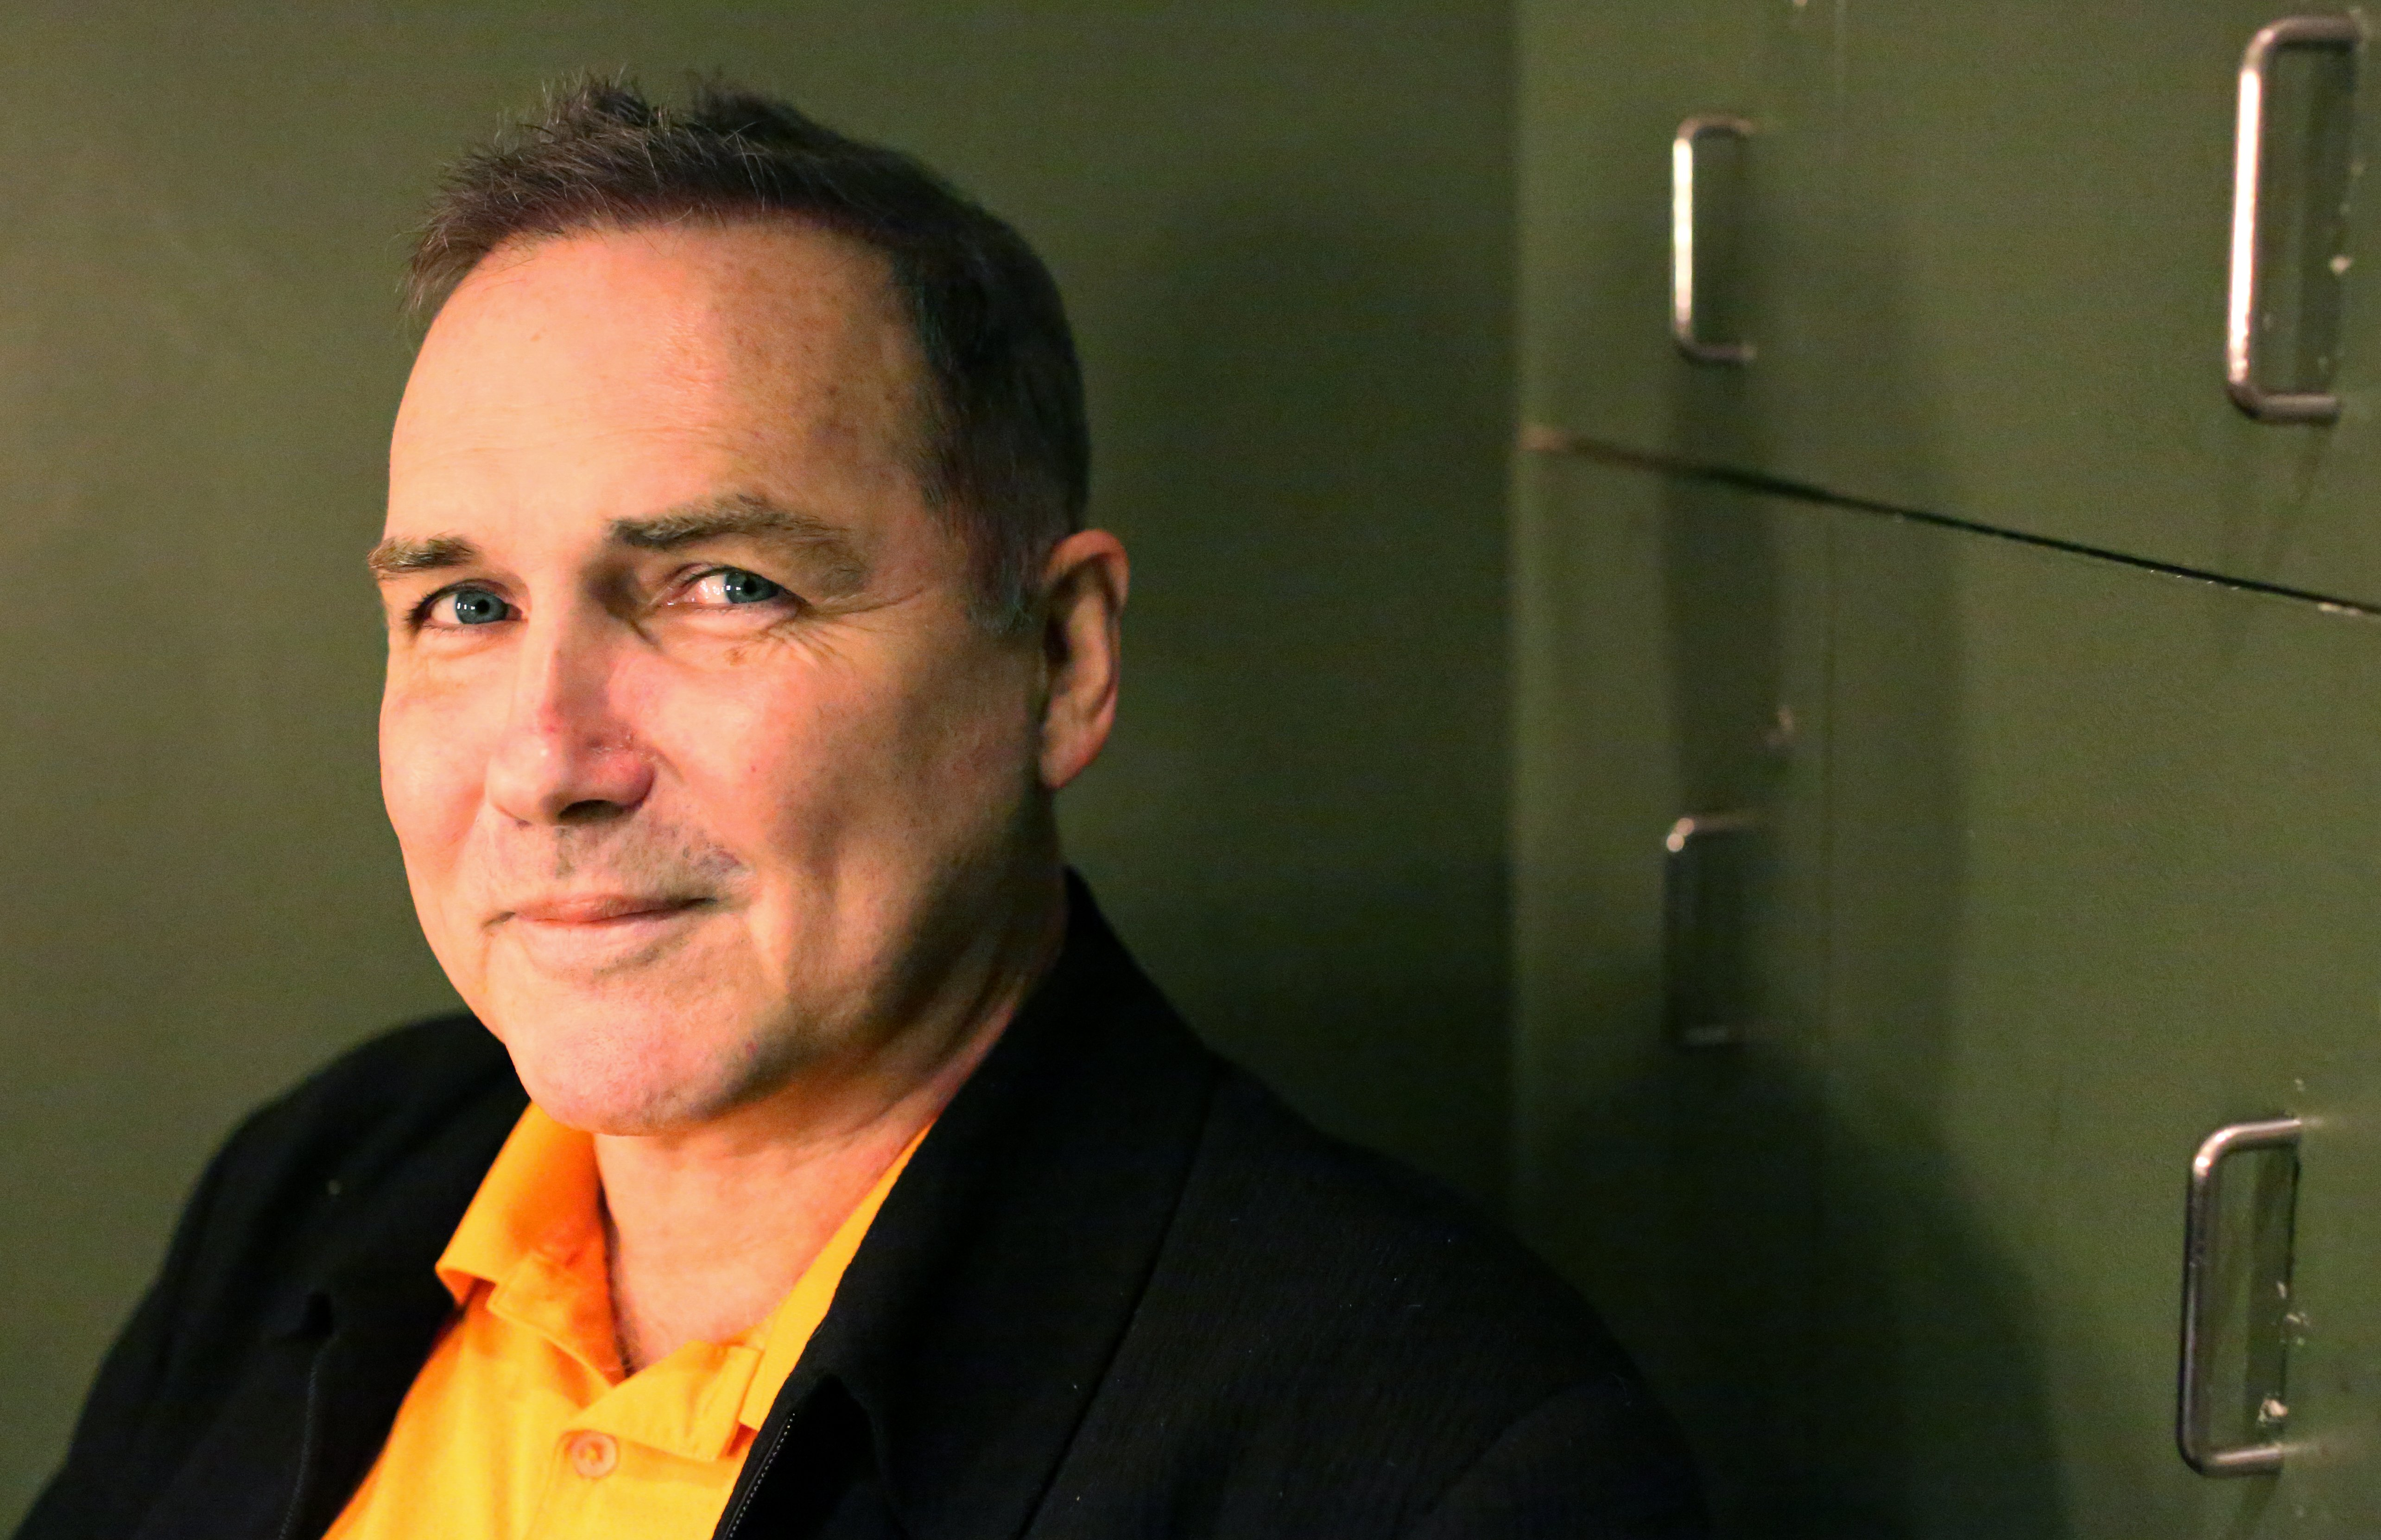 Comedian Norm MacDonald poses for a portrait while preparing to perform at Carolines on Broadway in Manhattan, NY, on November 13, 2015. | Source: Getty Images